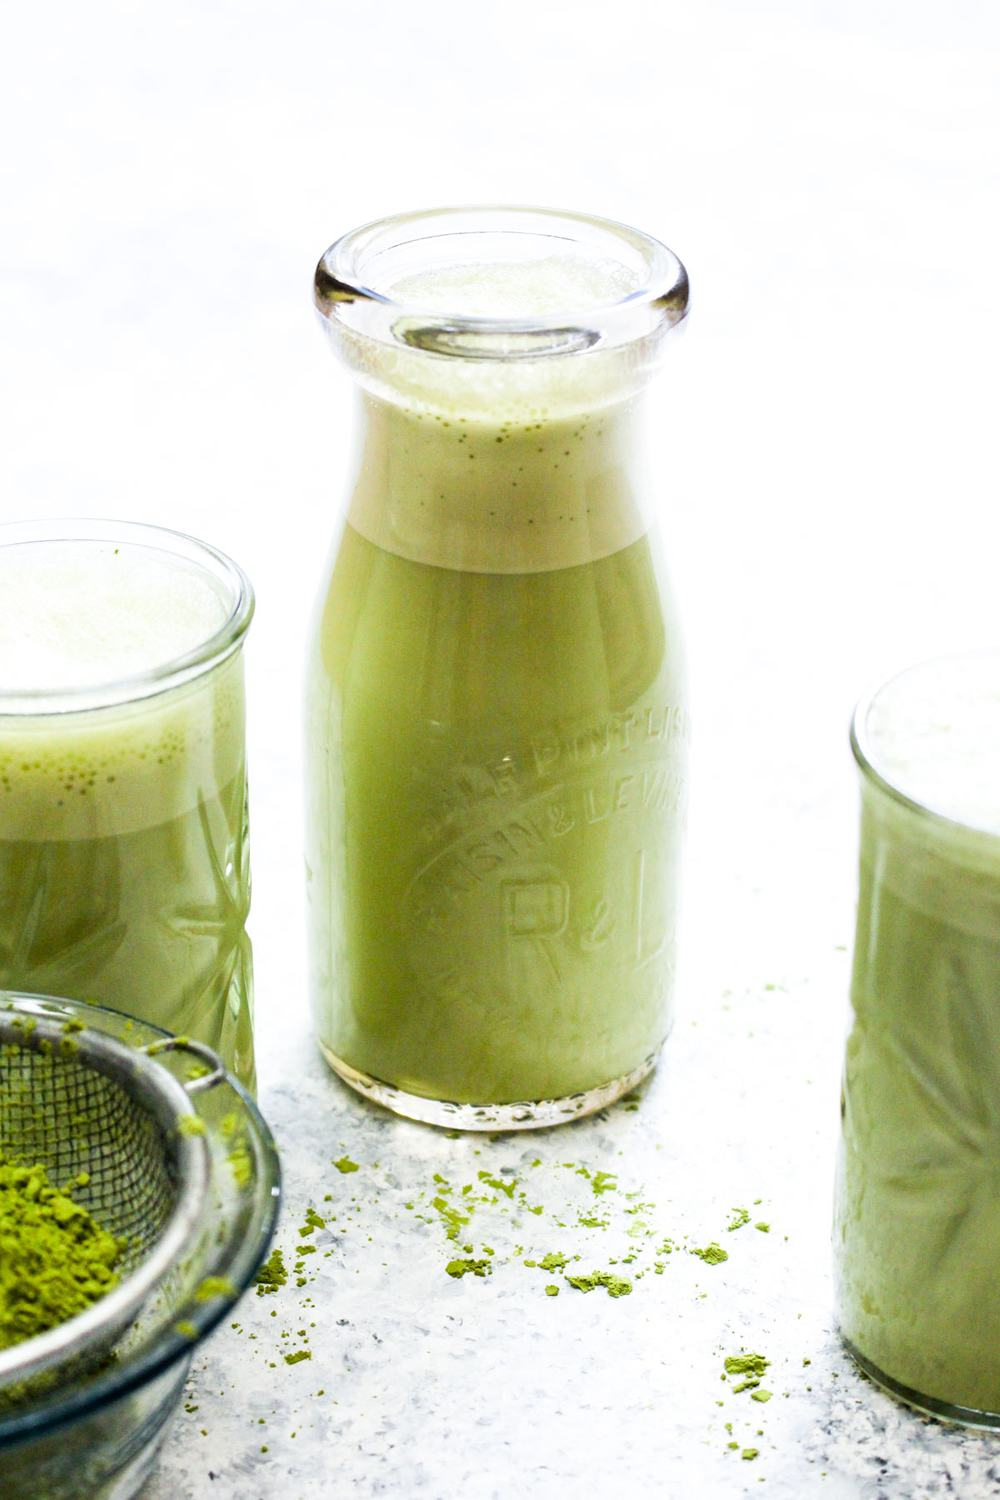 Honey Matcha Almond Milk is a 3 ingredient big batch recipe that will make your morning routine easier. Make this drink on Sunday, and reheat it on busy weekday mornings for a quick and effortless naturally sweetened paleo and vegan matcha latte. Gluten free, grain free, oil free, raw, and healthy! | CatchingSeeds.com